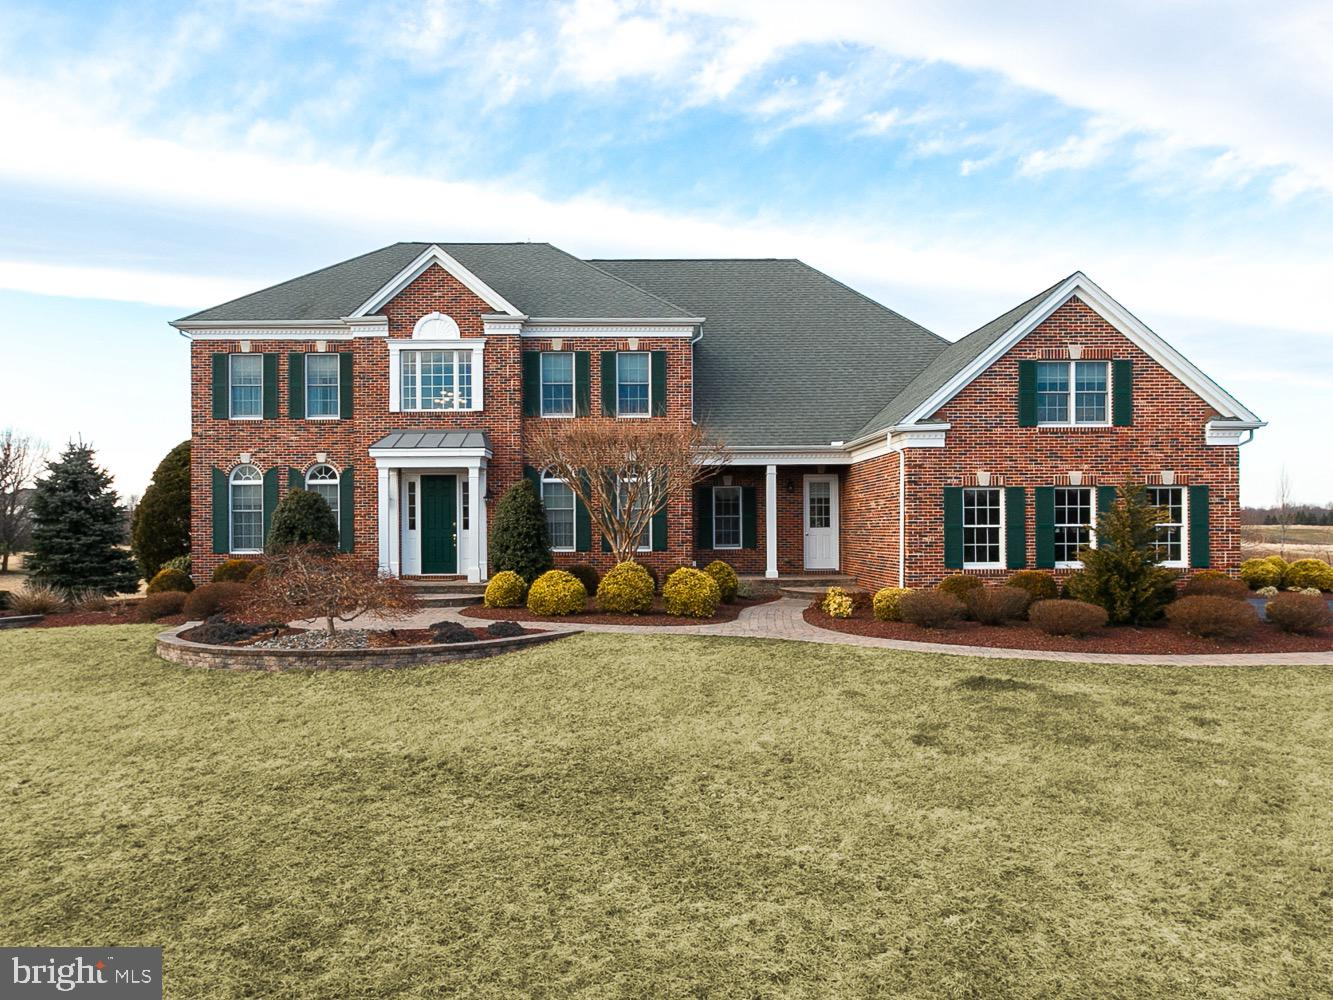 6 Apple Blossom Ln, Cream Ridge, NJ, 08514